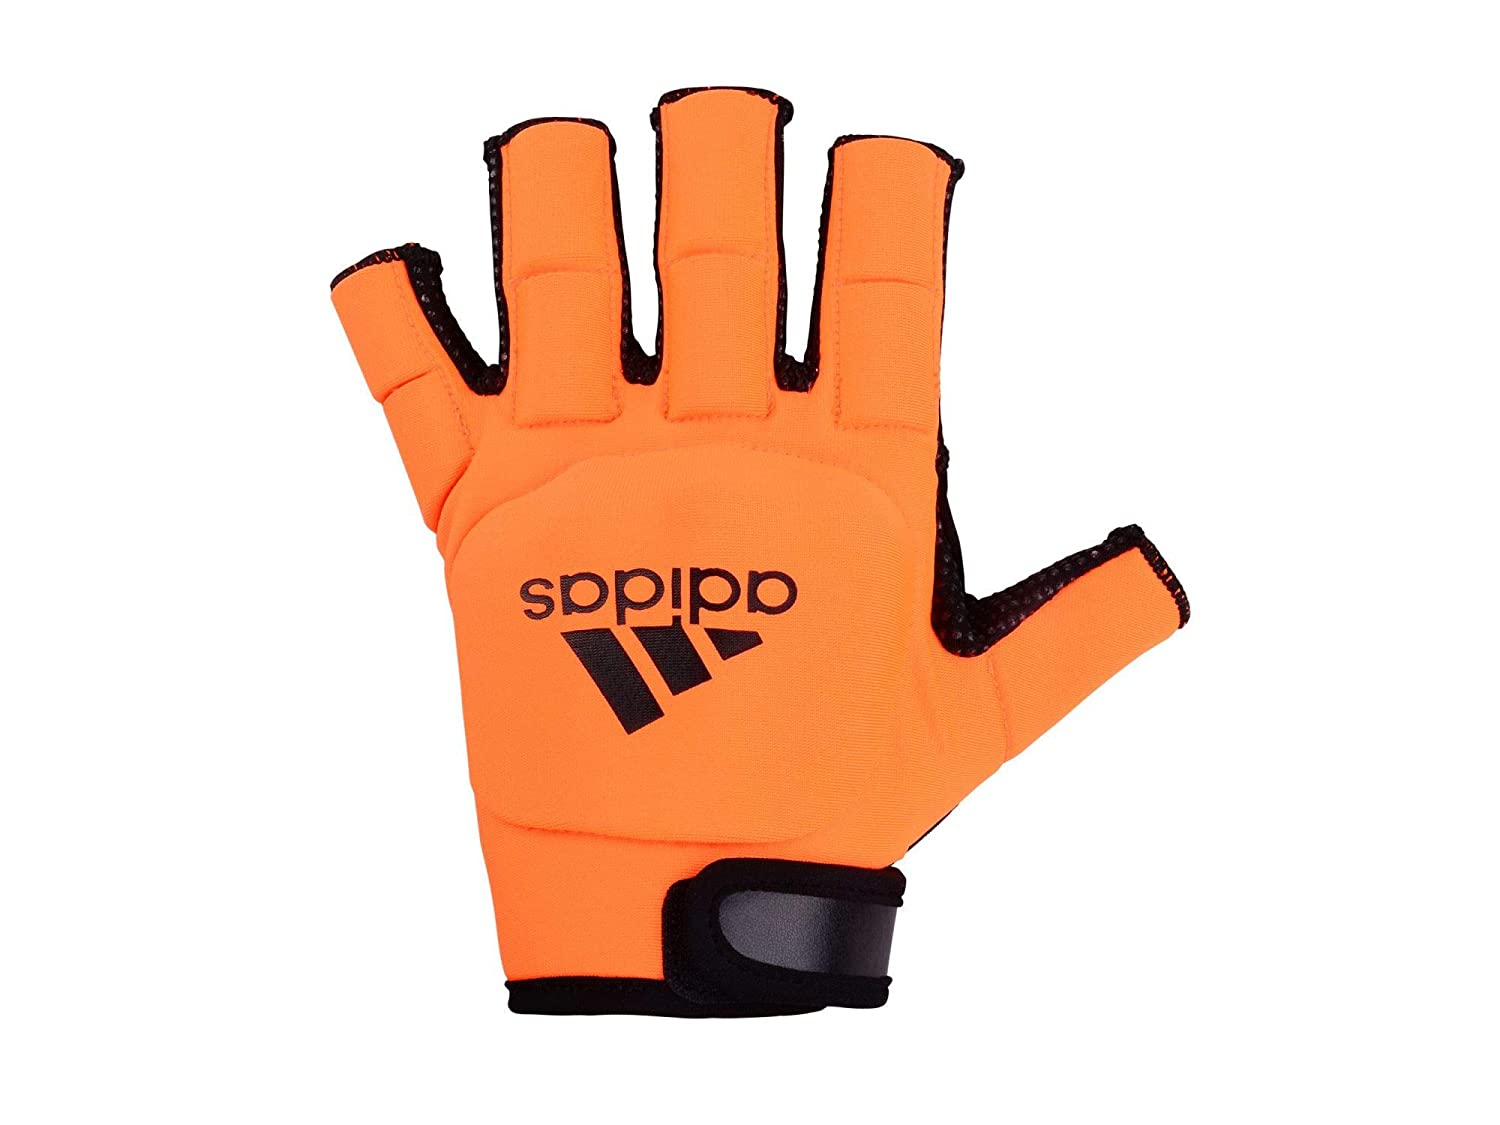 hierba Plasticidad Inicialmente  adidas OD Hockey Glove - Orange/Black (2019/20): Amazon.co.uk ...